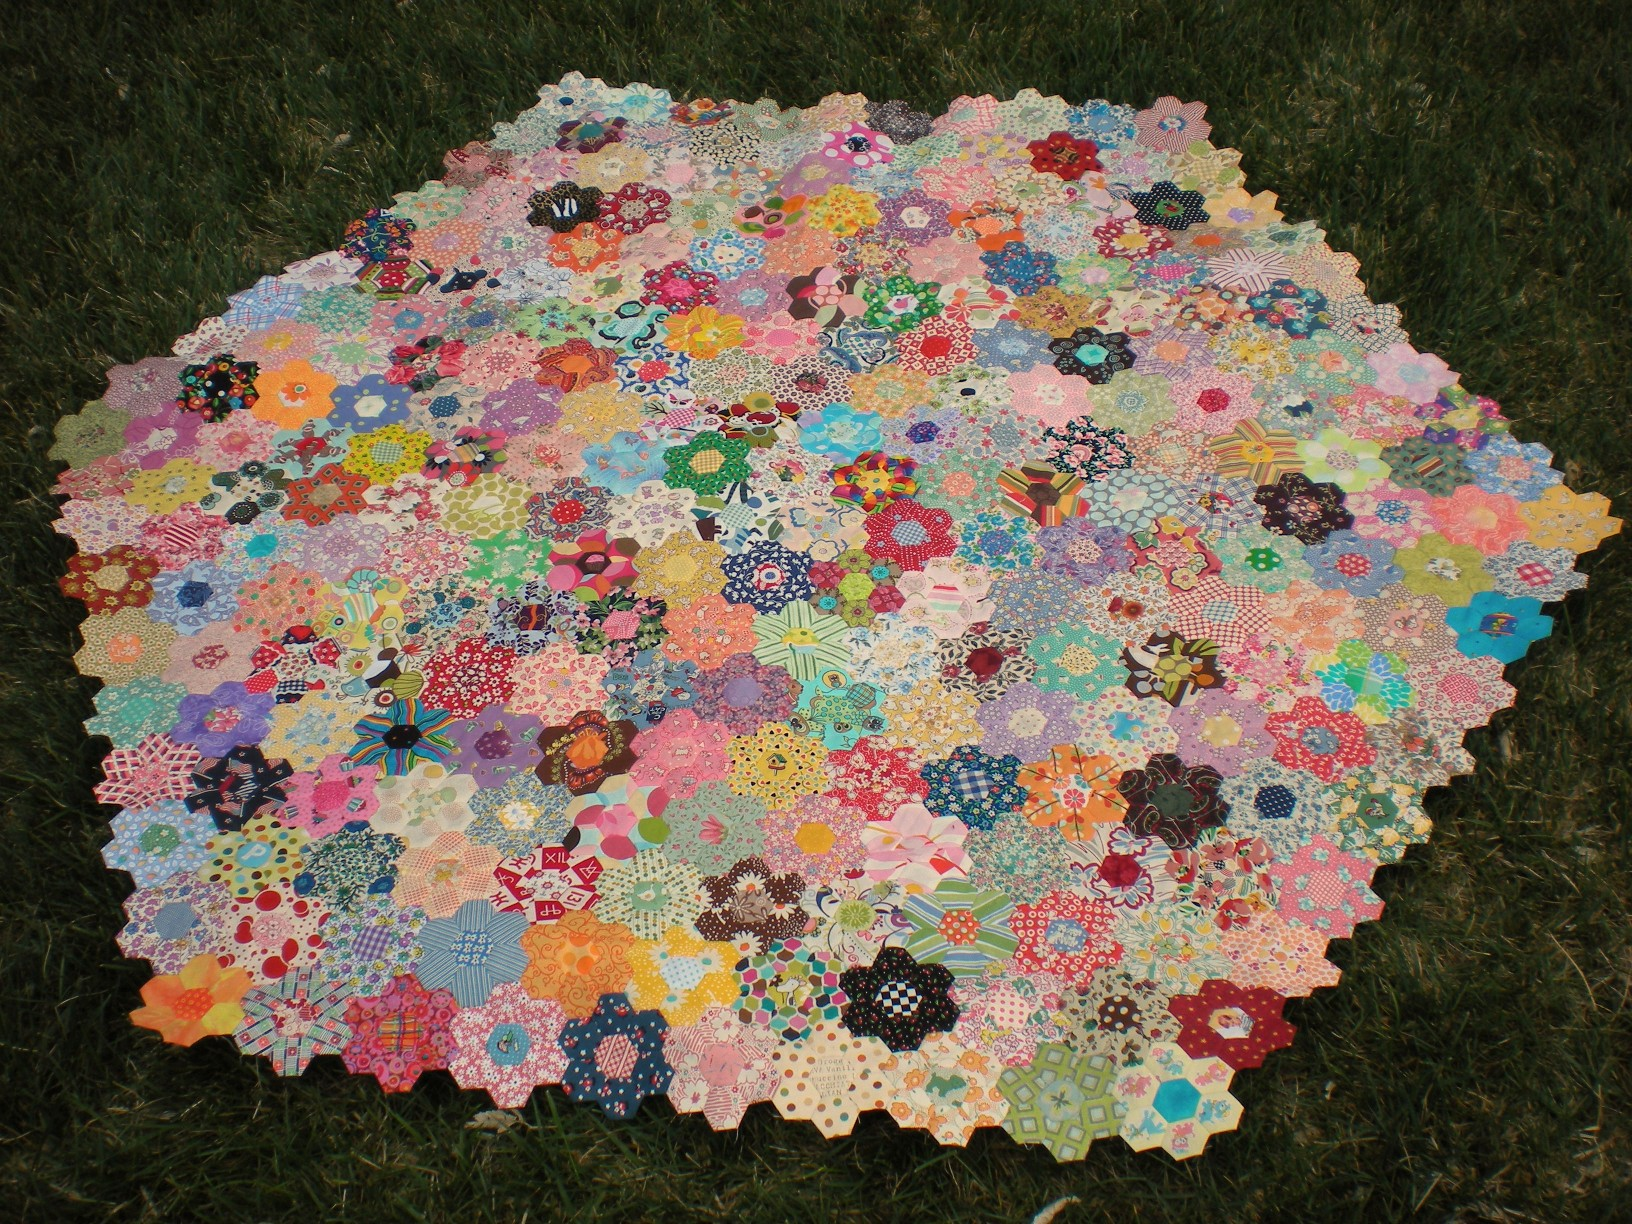 The Completed Hexie Hexagon!